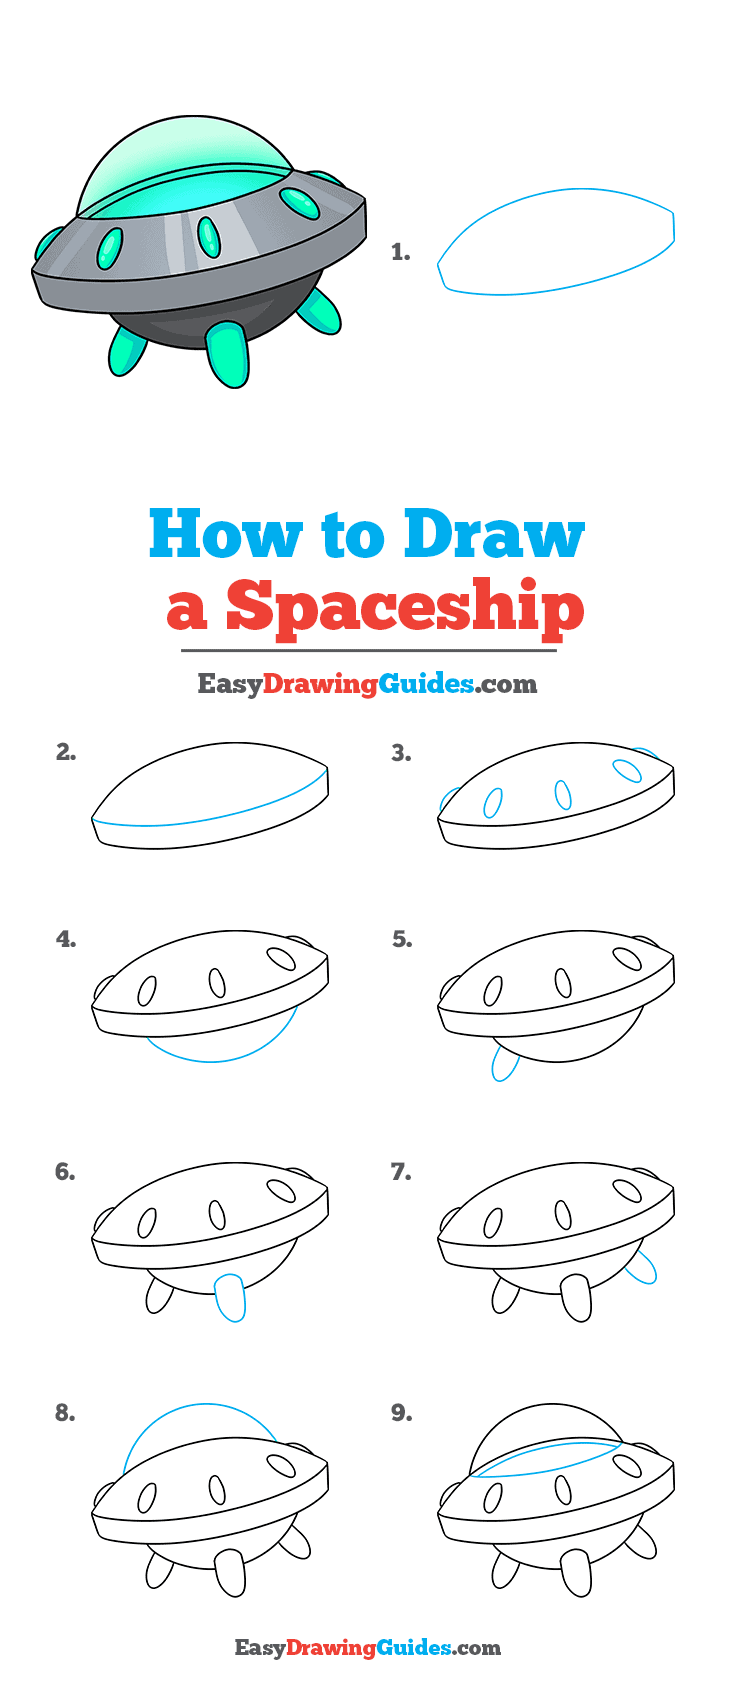 How to Draw Spaceship